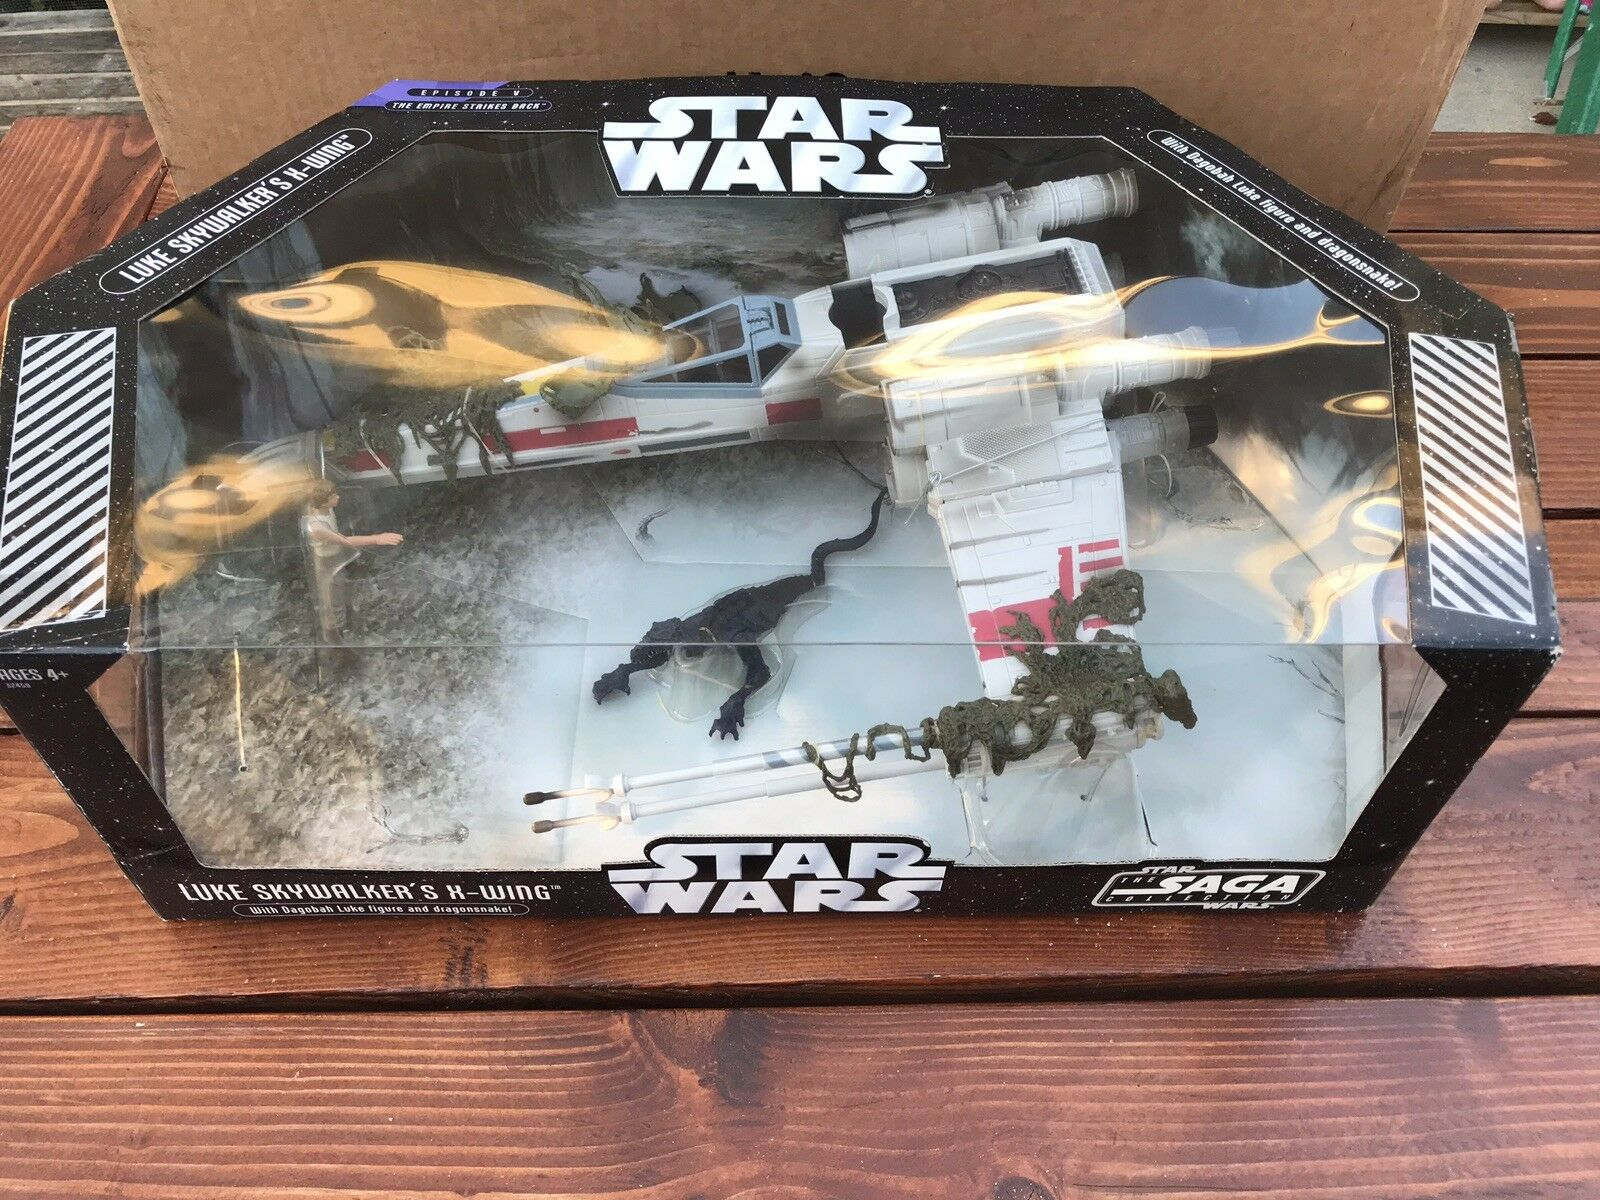 Star Wars SAGA 2006 Luke Skywalker's X-WING with Dagobah figure and dragonsnake